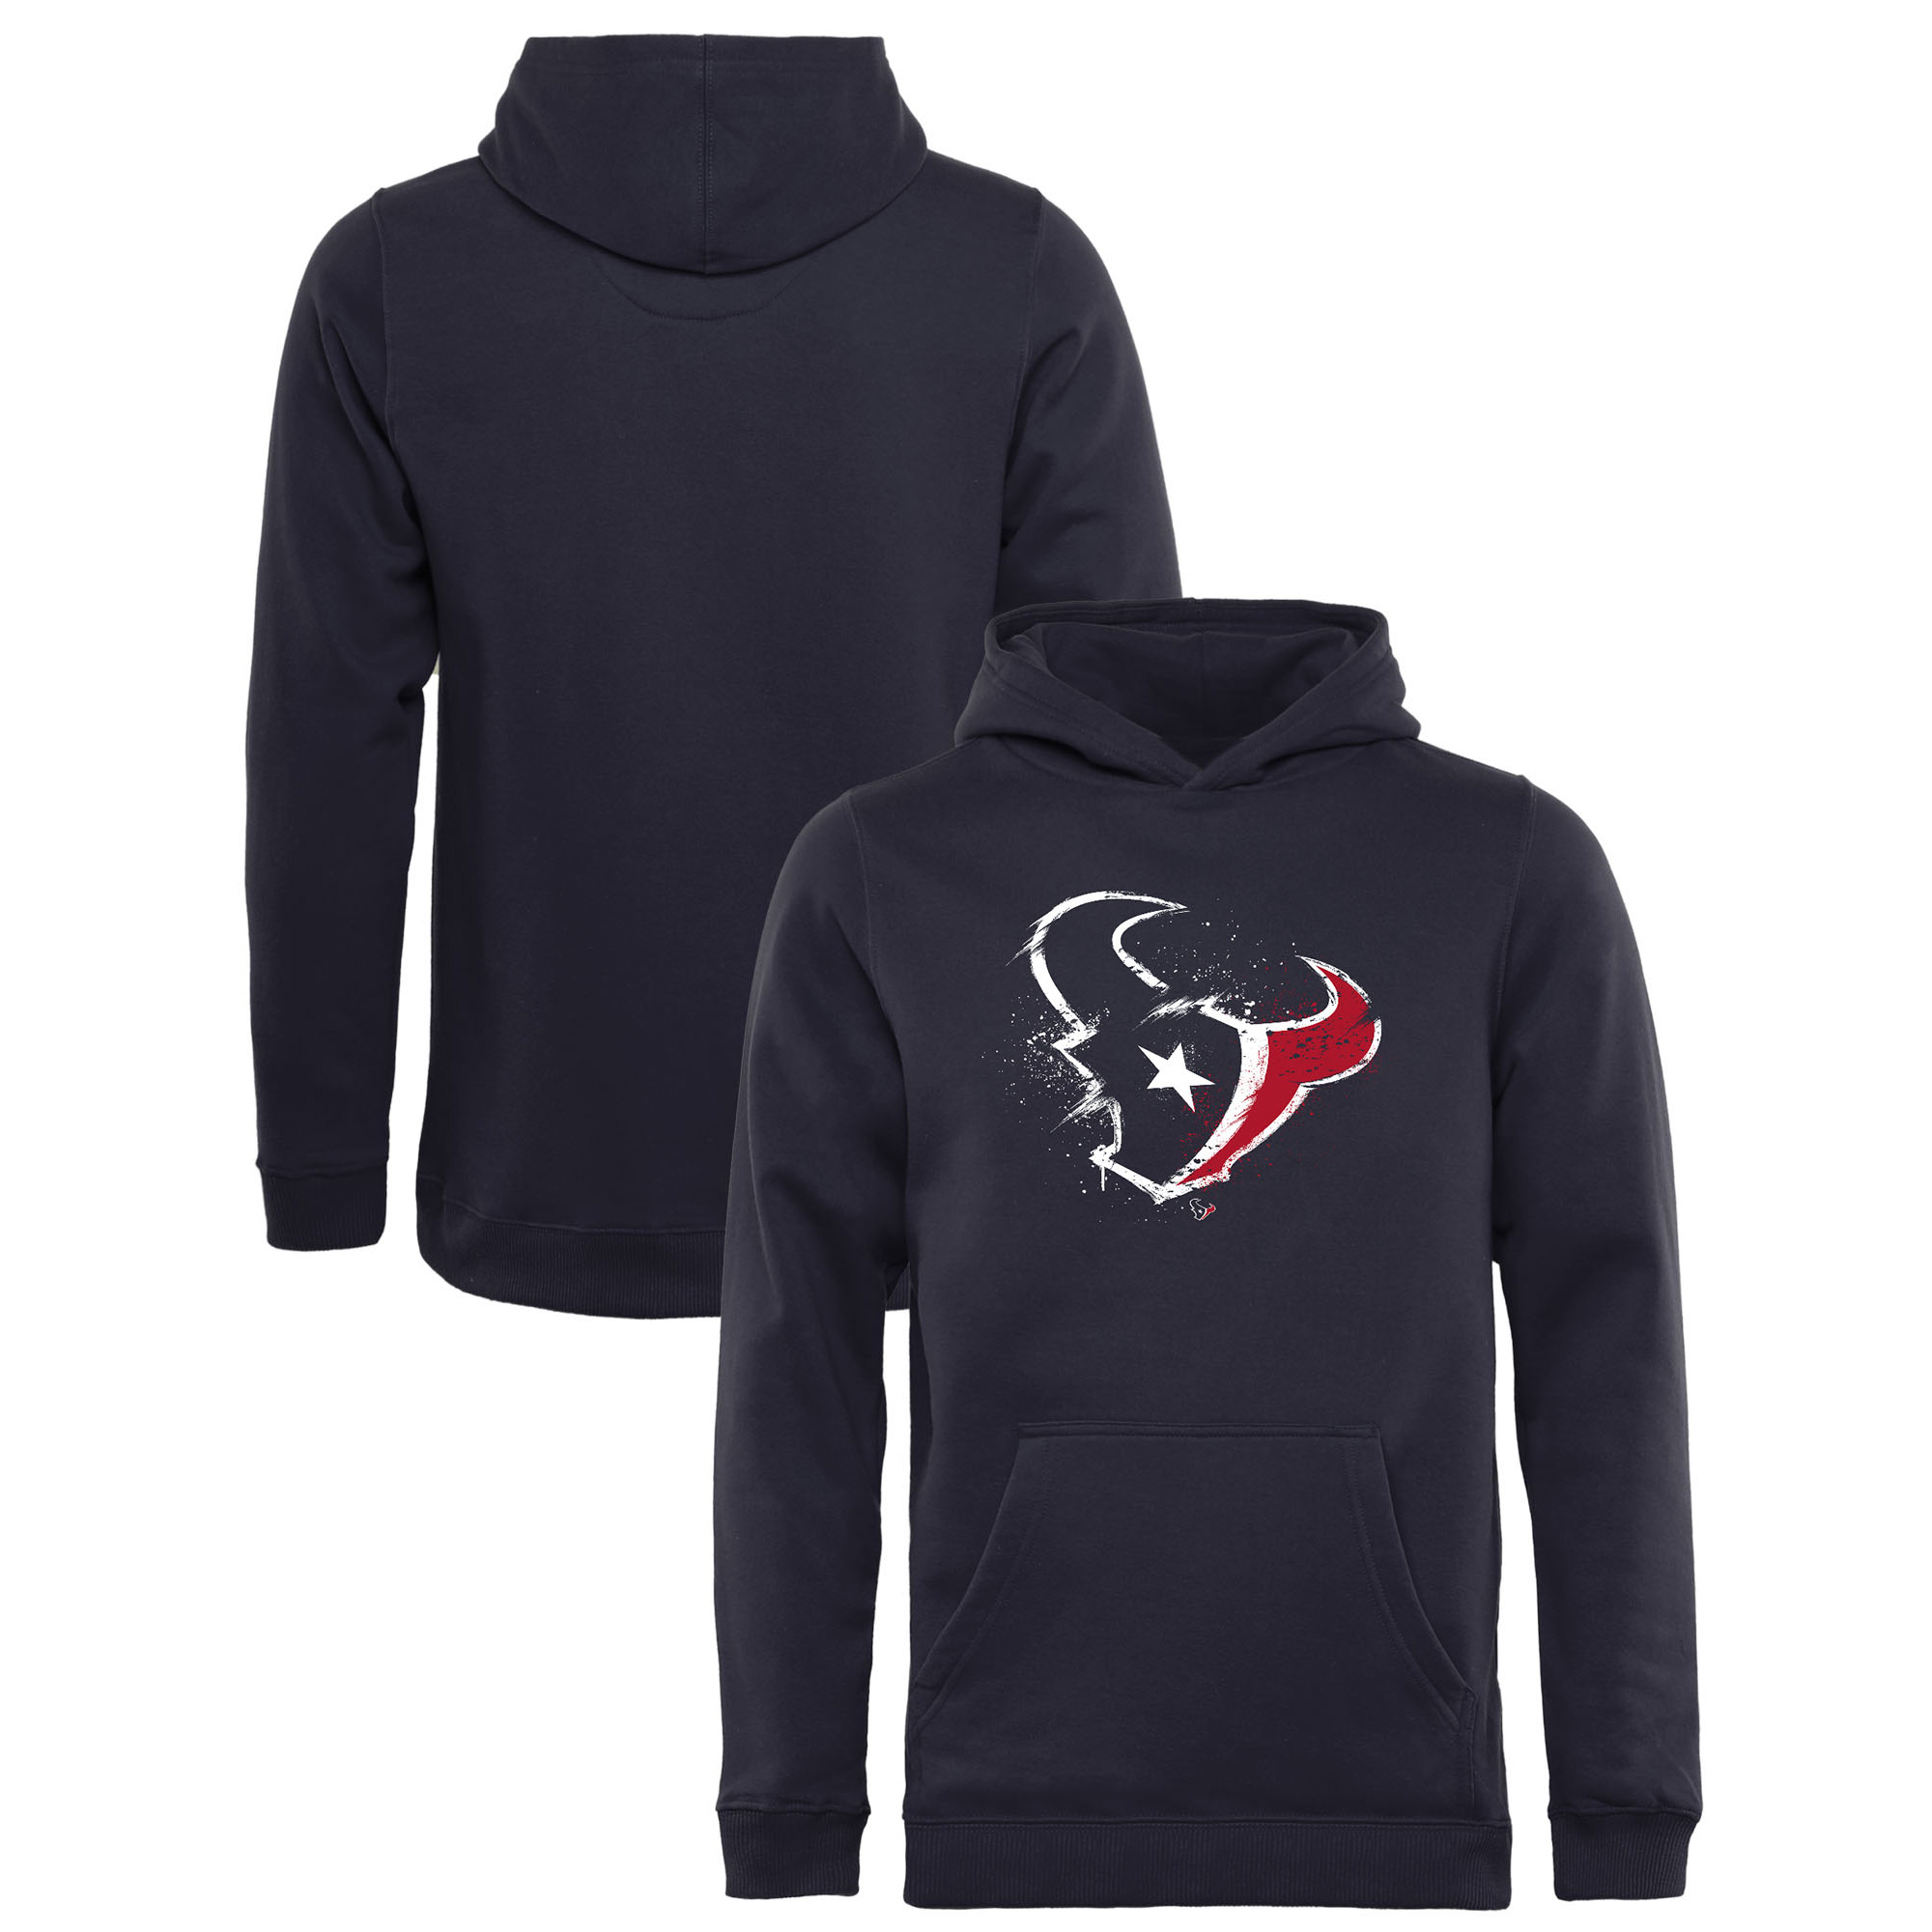 Houston Texans NFL Pro Line by Fanatics Branded Youth Splatter Logo Pullover Hoodie - Navy